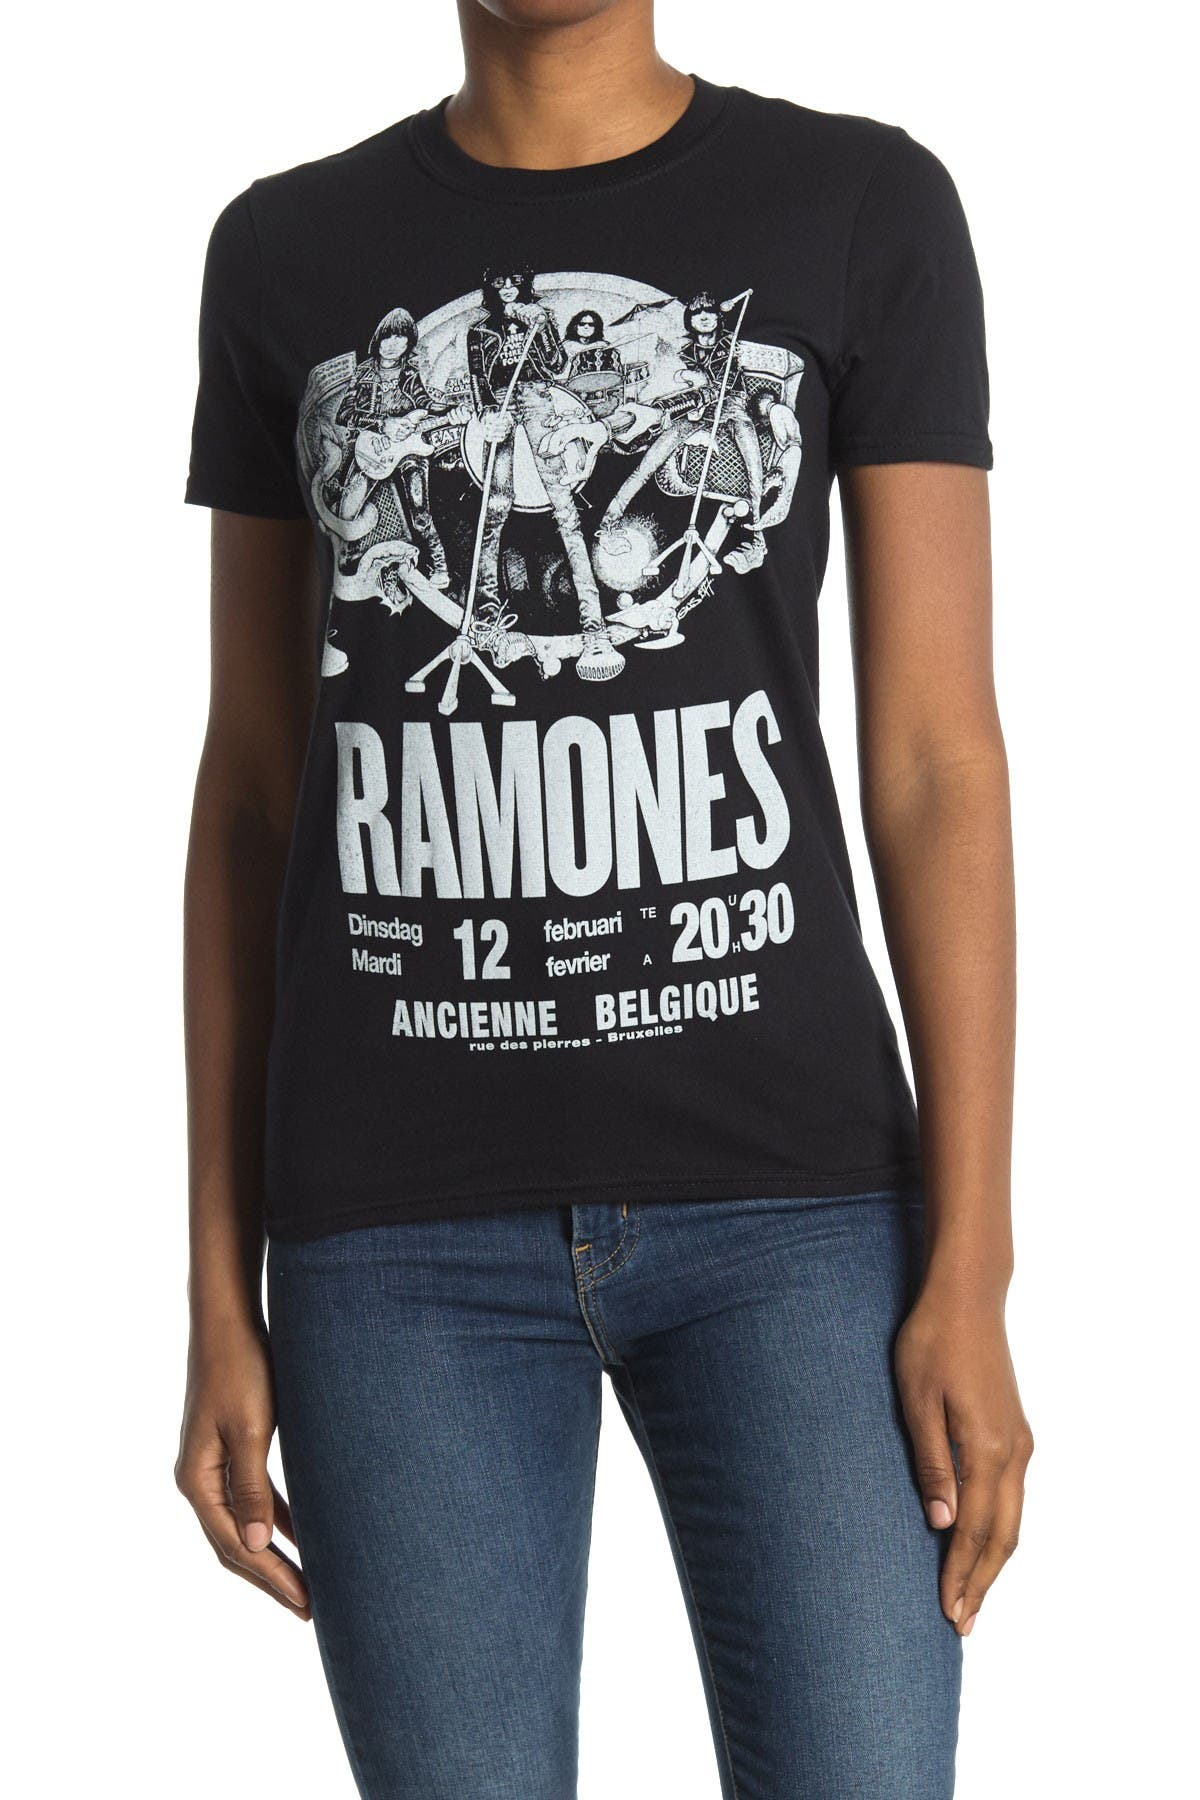 Image of MERCH TRAFFIC Ramones Concert T-Shirt